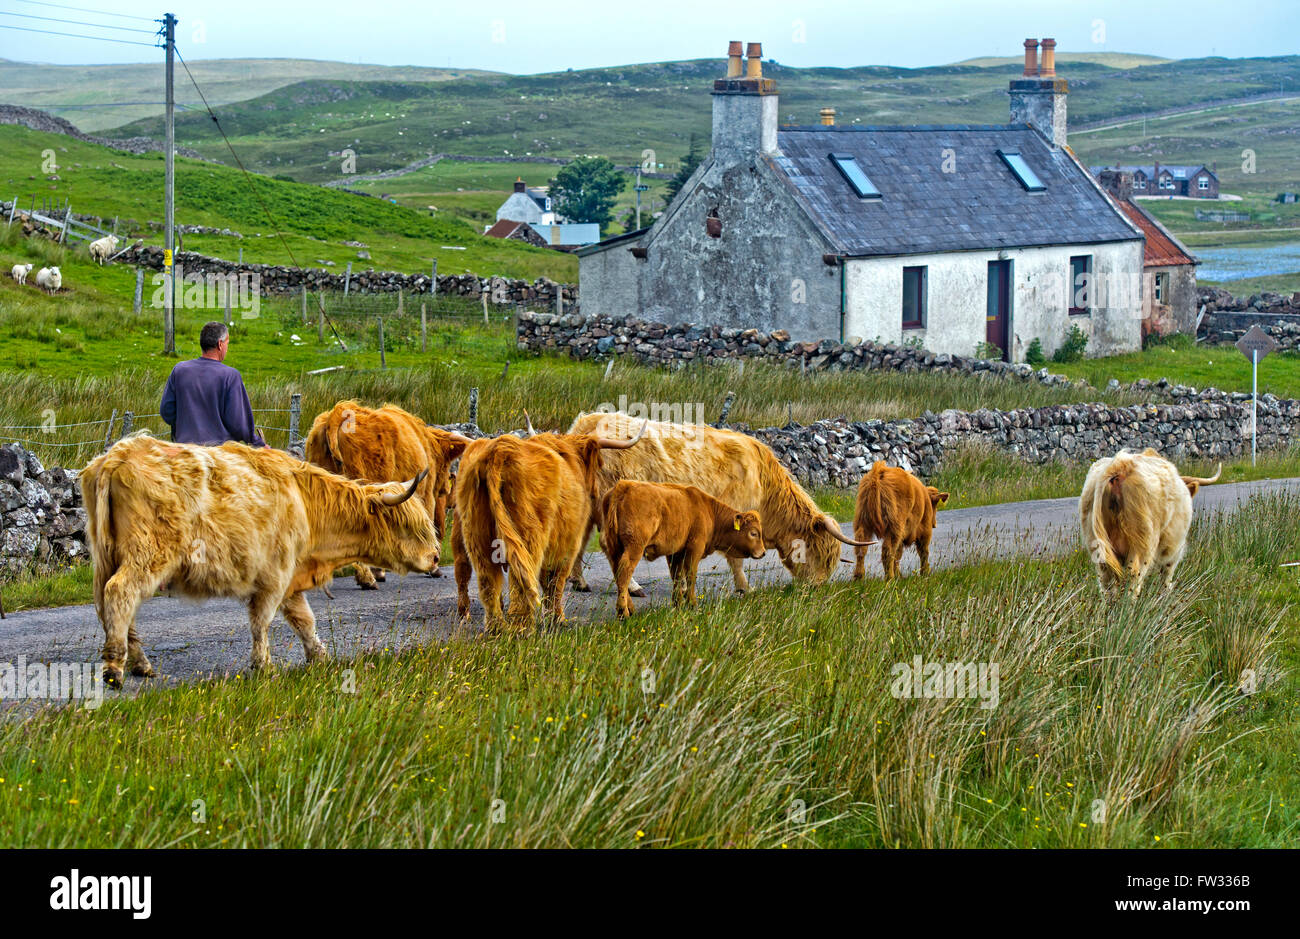 Highland Cattle (Bos taurus) or Kyloe, herd walking across ...